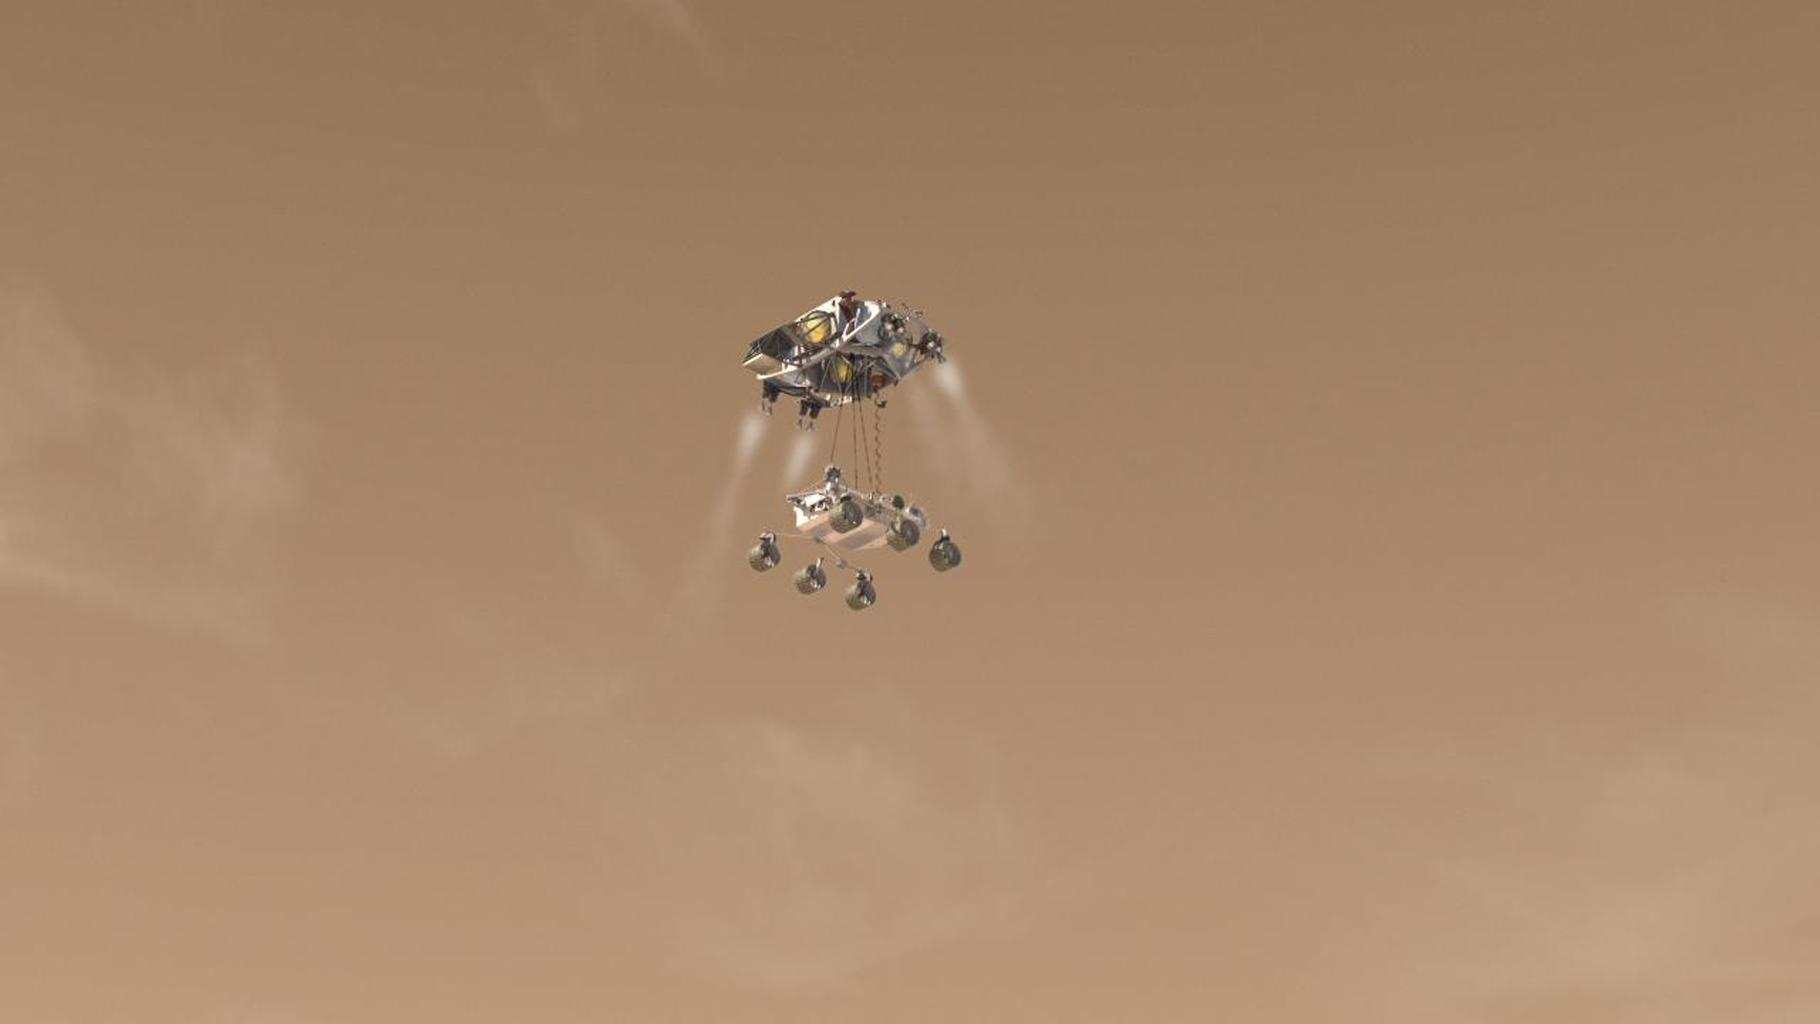 This artist's concept depicts Curiosity, the rover to be launched in 2011 by NASA's Mars Science Laboratory, as it is being lowered by the mission's rocket-powered descent stage during a critical moment of the 'sky crane' landing in 2012.